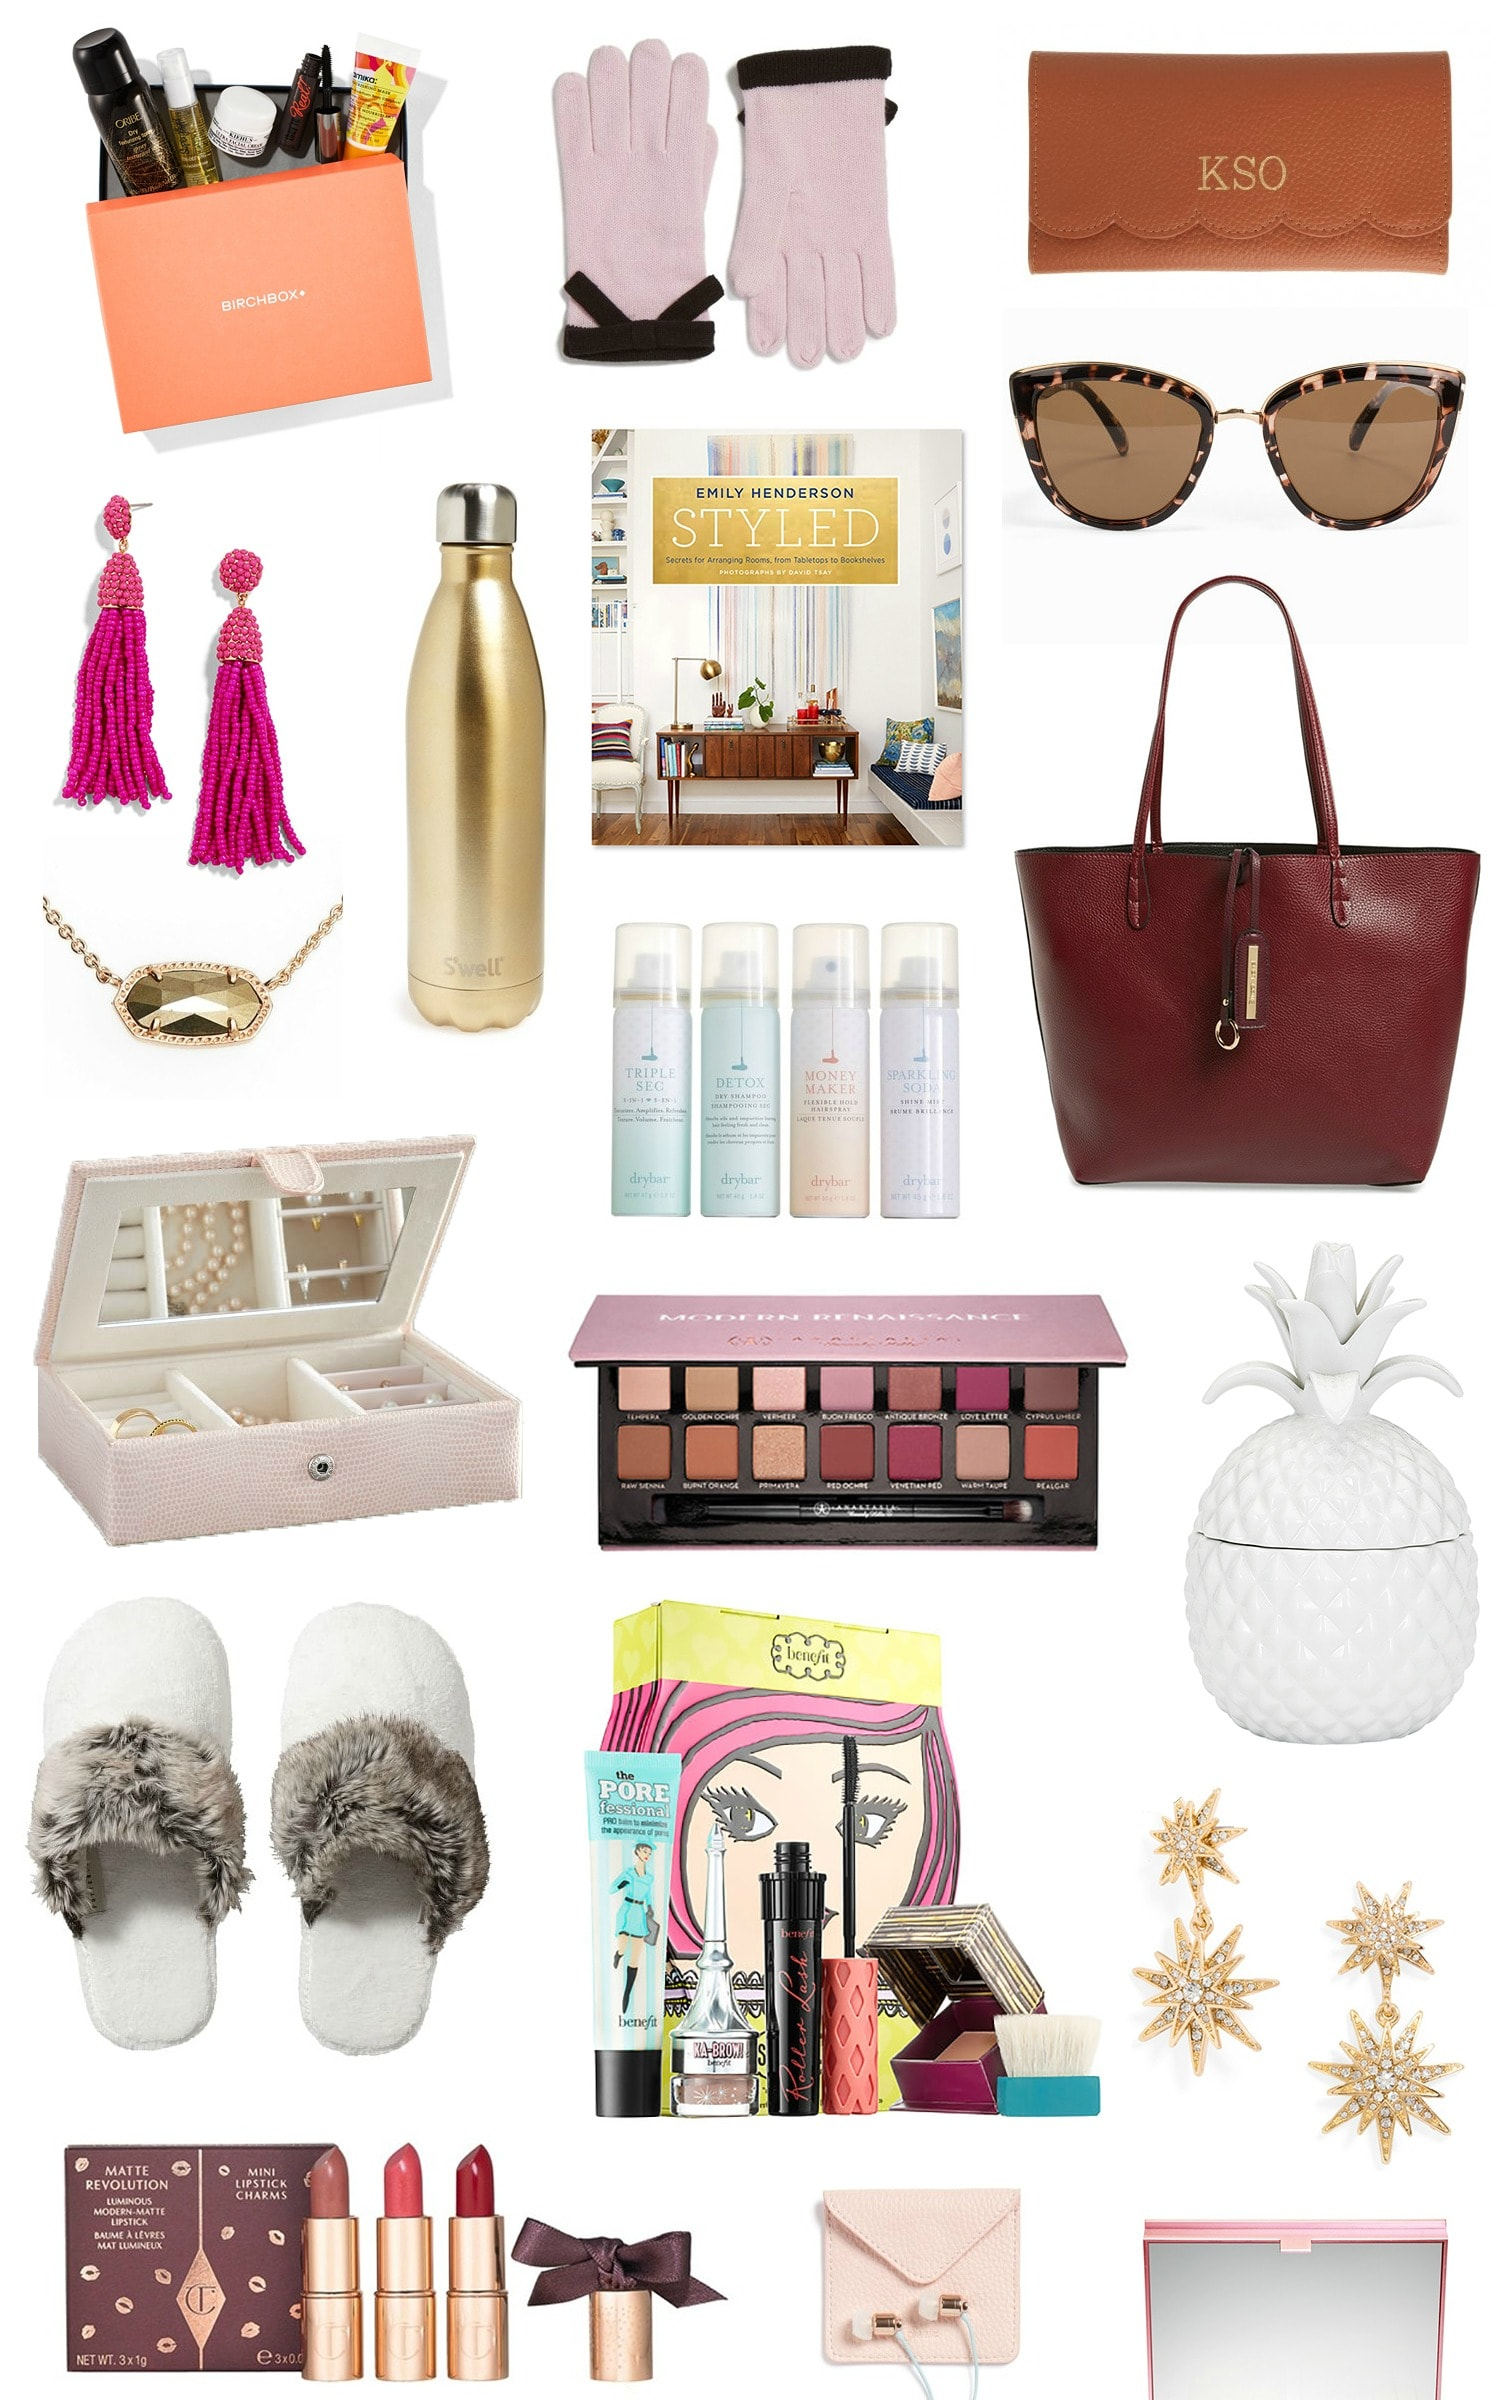 The Best Christmas Gift Ideas for Women under $50 | Ashley ...